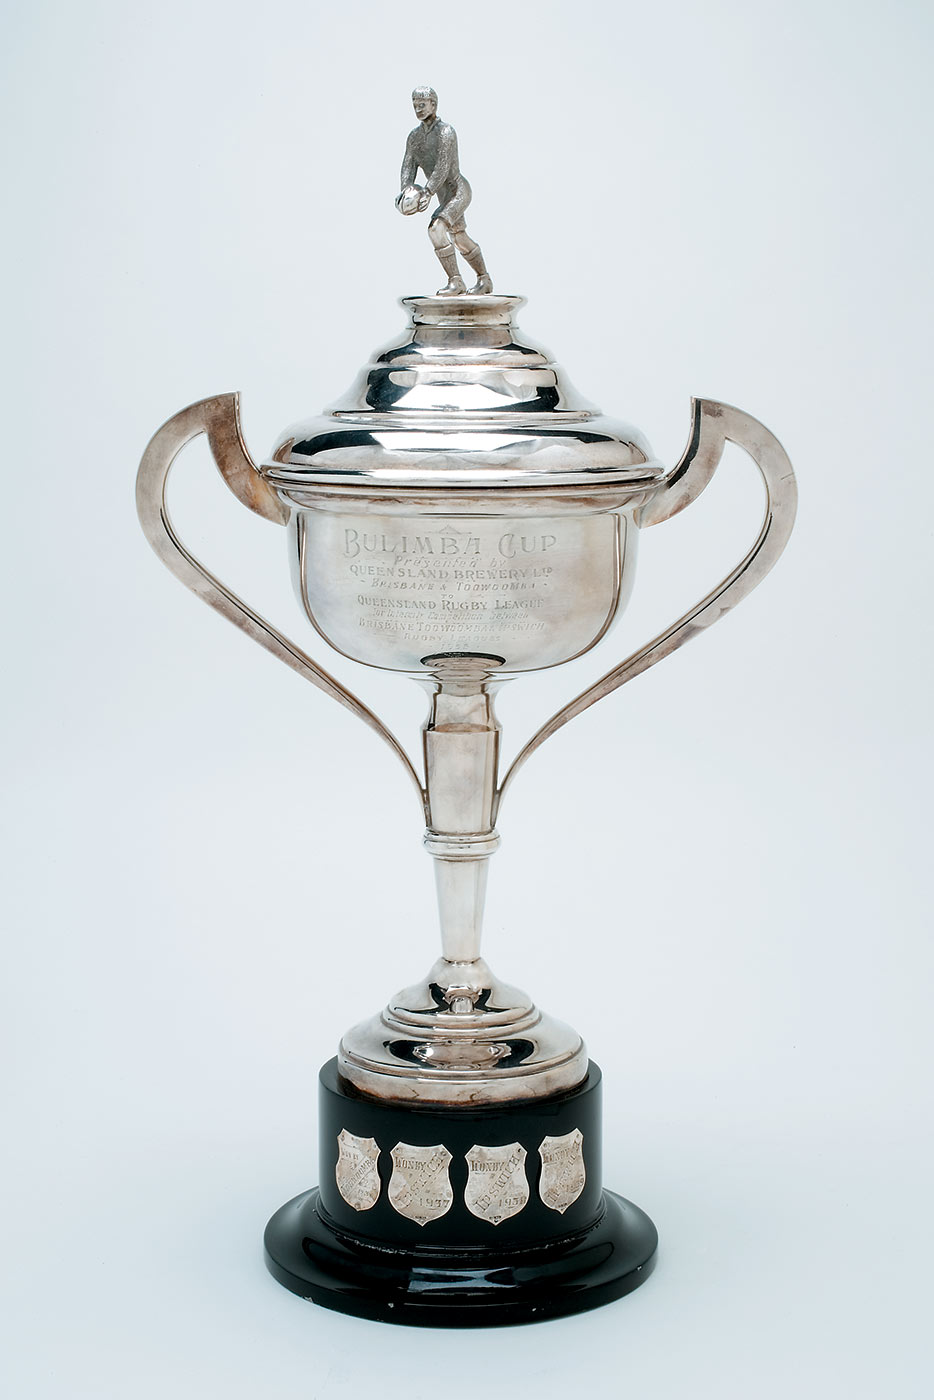 Silver presentation cup topped by a silver footballer preparing to kick a ball. - click to view larger image